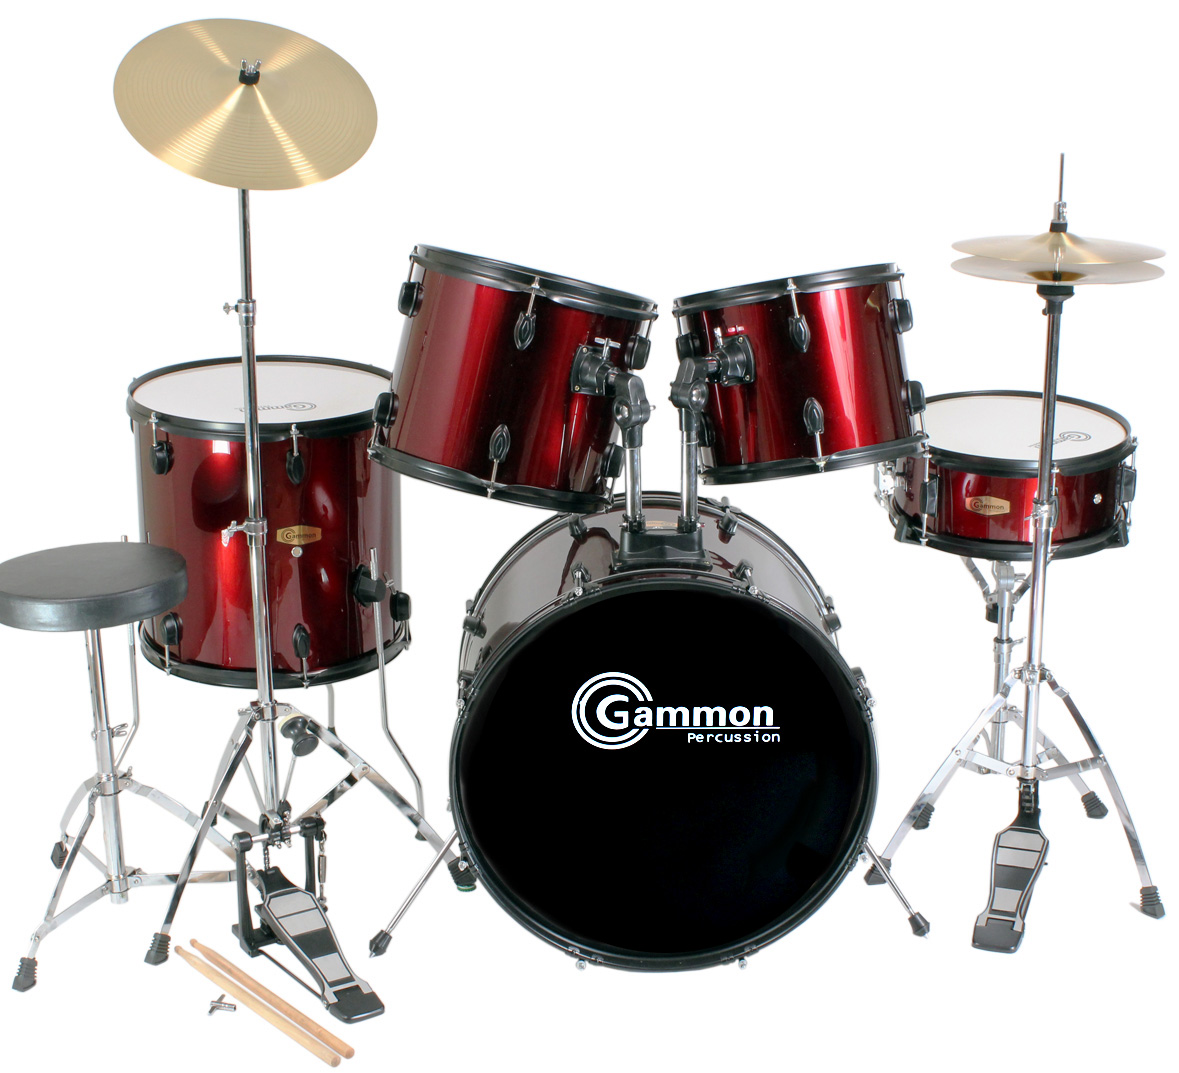 New-COMPLETE-5-Piece-ADULT-DRUM-SET-CYMBALS-FULL-SIZE-with-Cymbals-Stands-Sticks